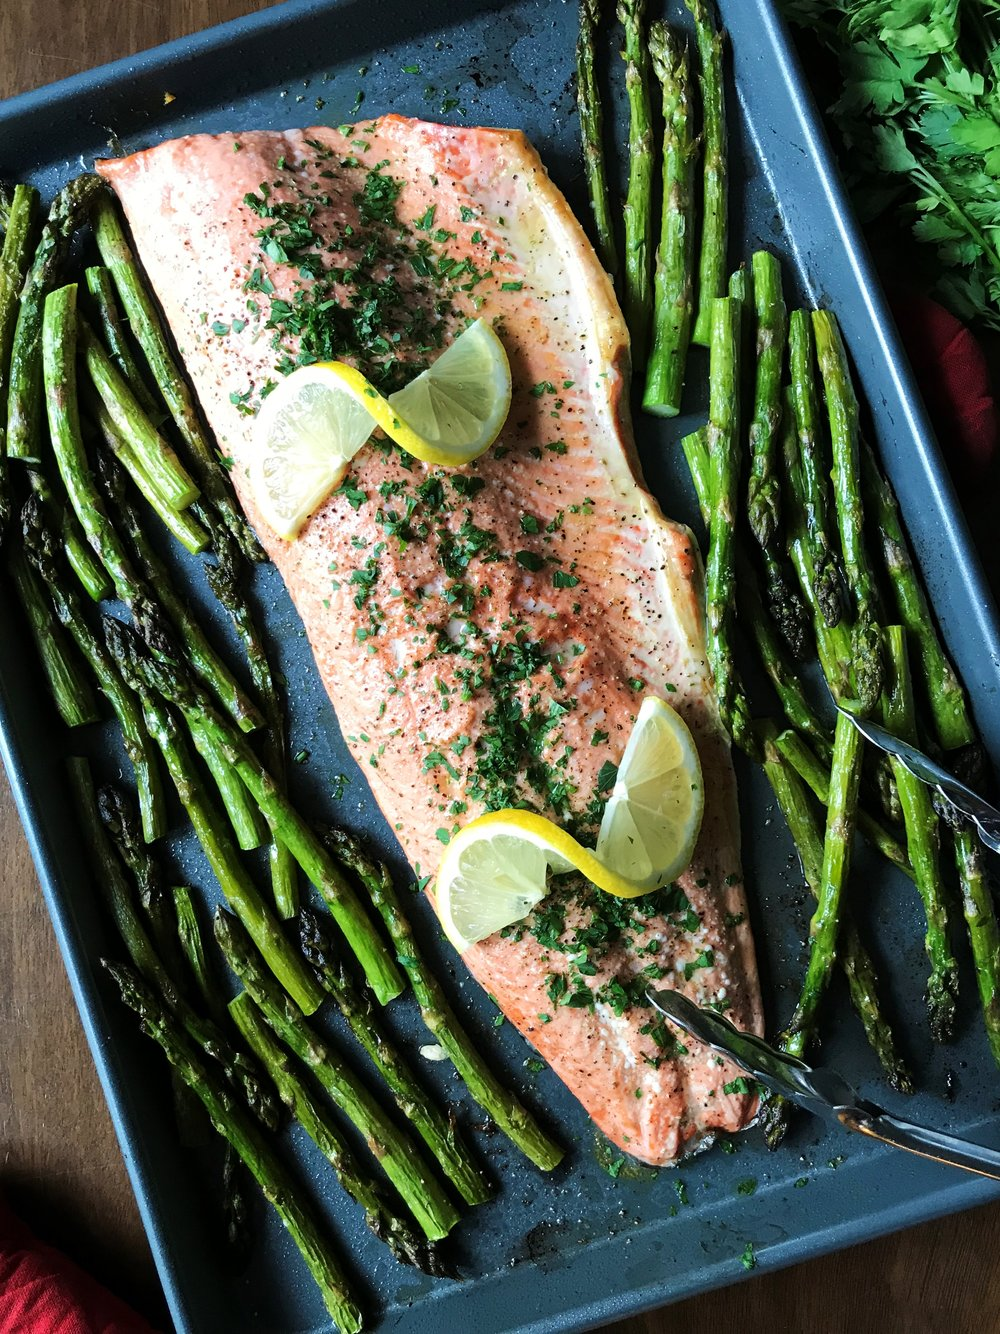 It's a sheet pan dinner that helps you clean the pan at the end! (Plus, yum.) Sheet Pan Lemony Garlic Salmon with Asparagus, made in the Adventure Kitchen.